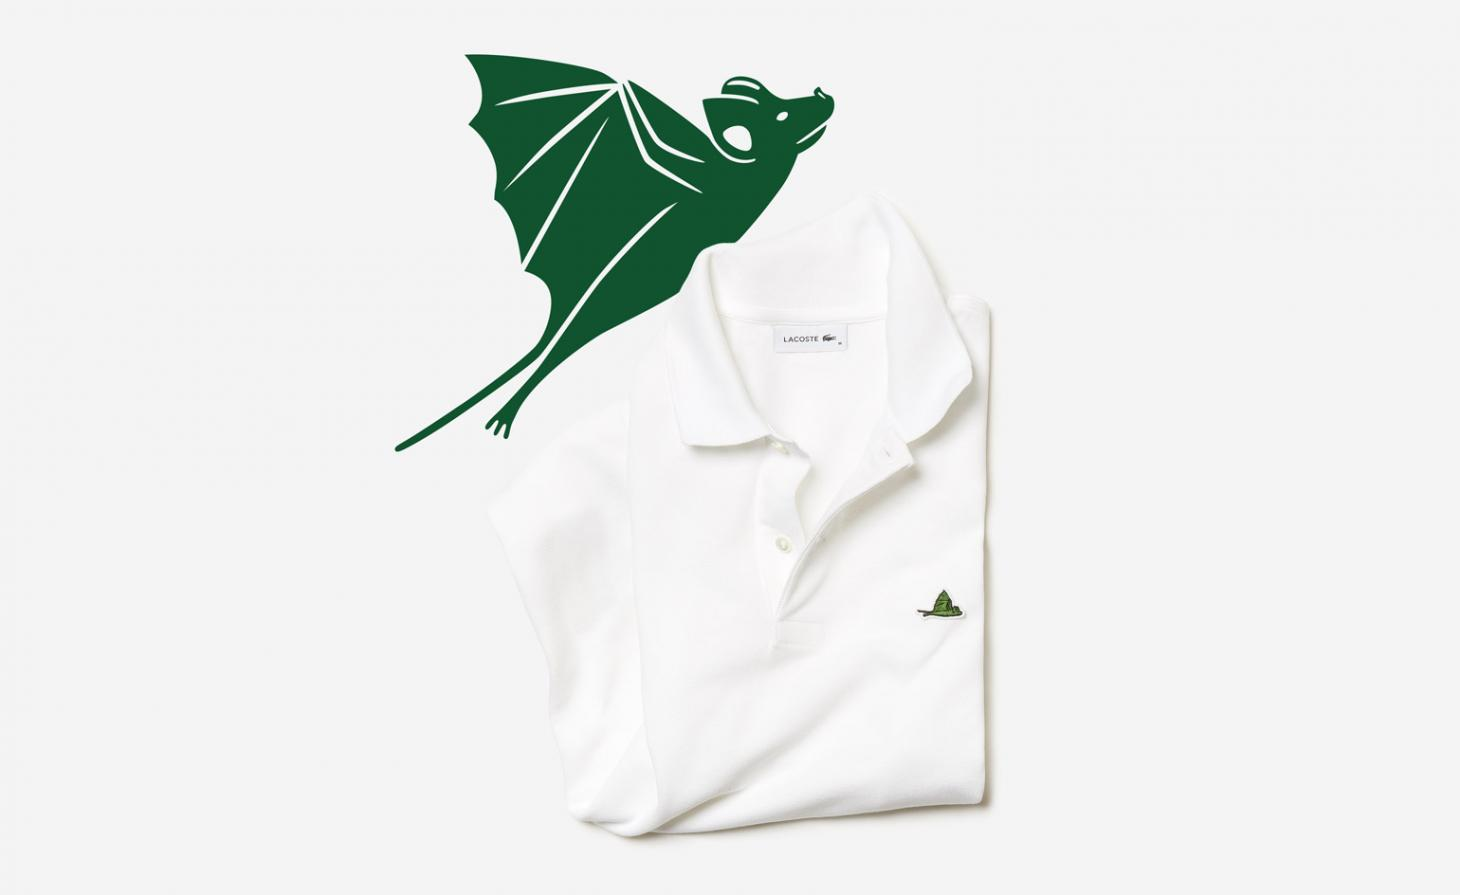 a9643e5f7 In a pledge to save endangered species, Lacoste has teamed up with the  International Union for Conservation of Nature (IUCN) to create ten limited  edition ...